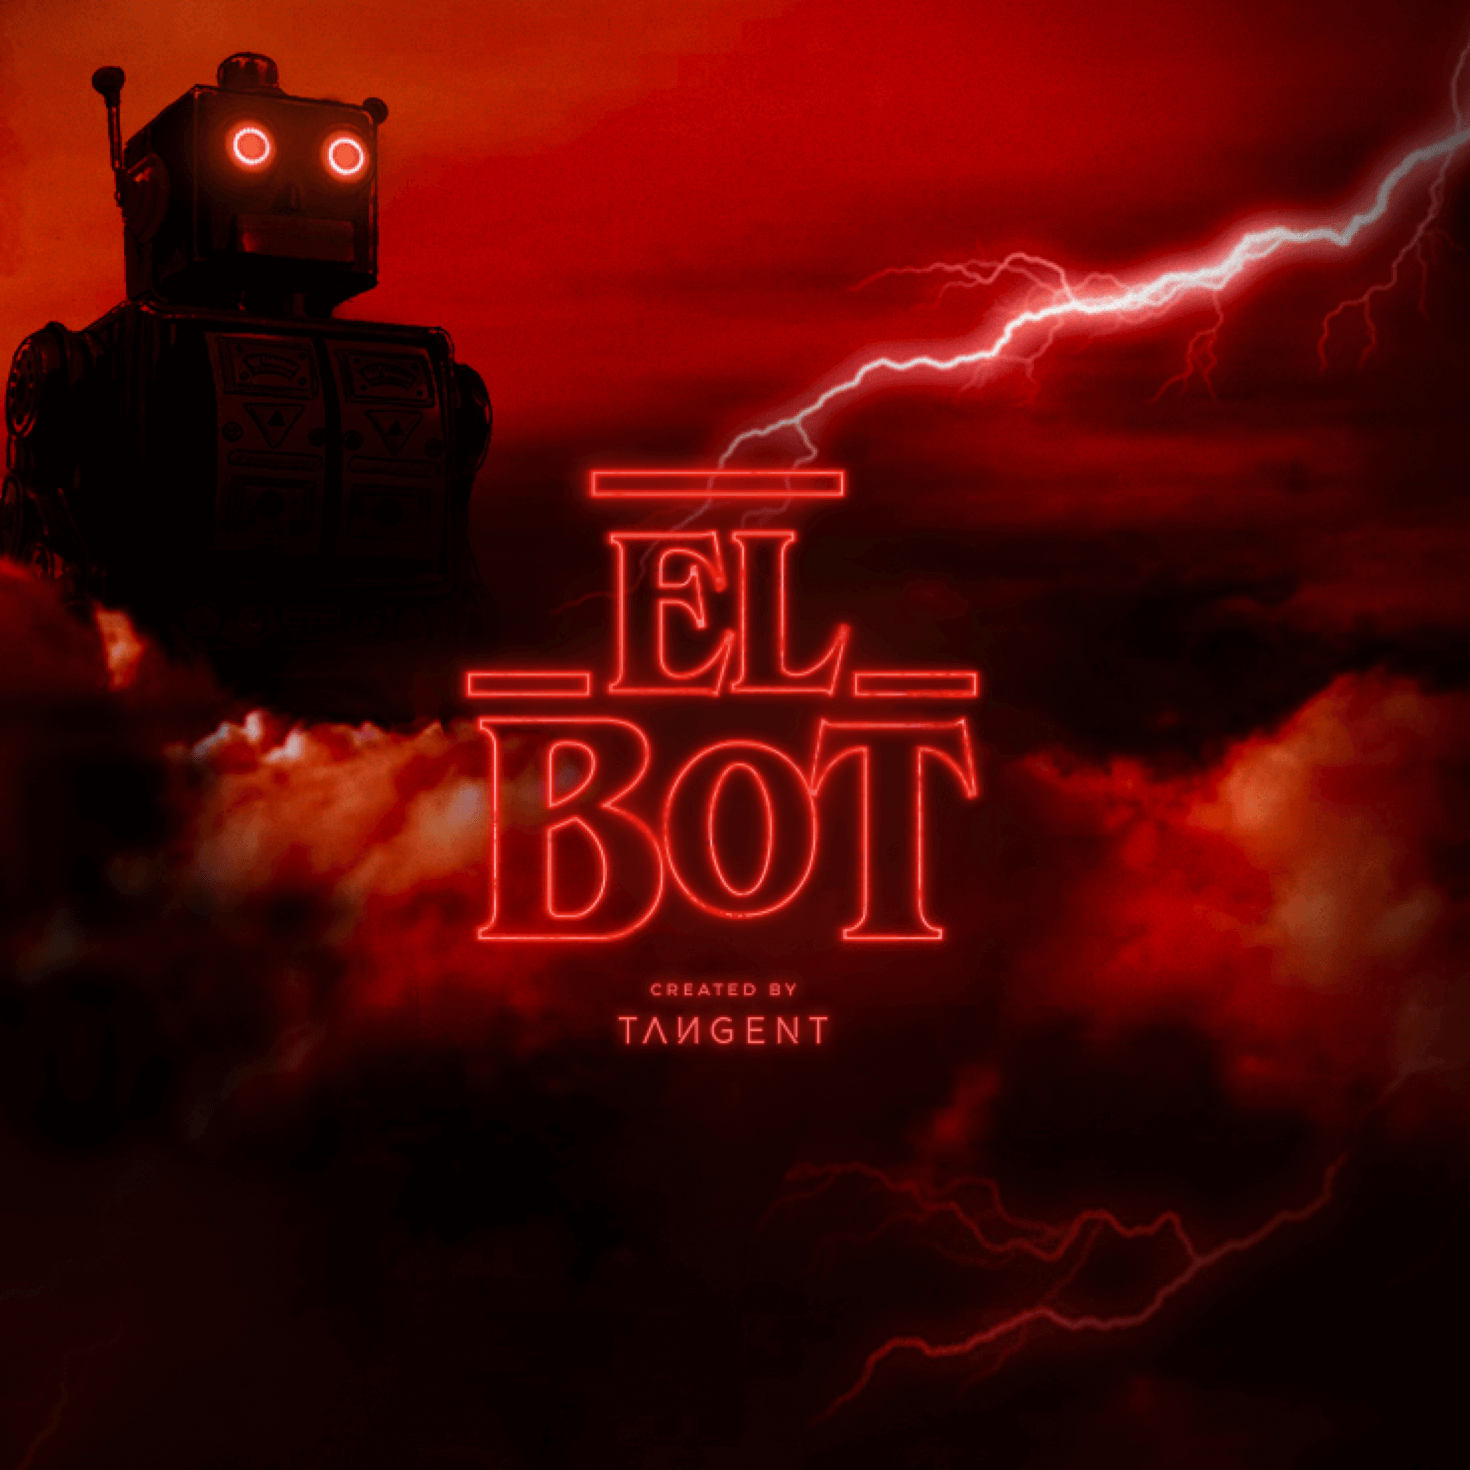 Elbot -The logo, robot in the background with bright lightning